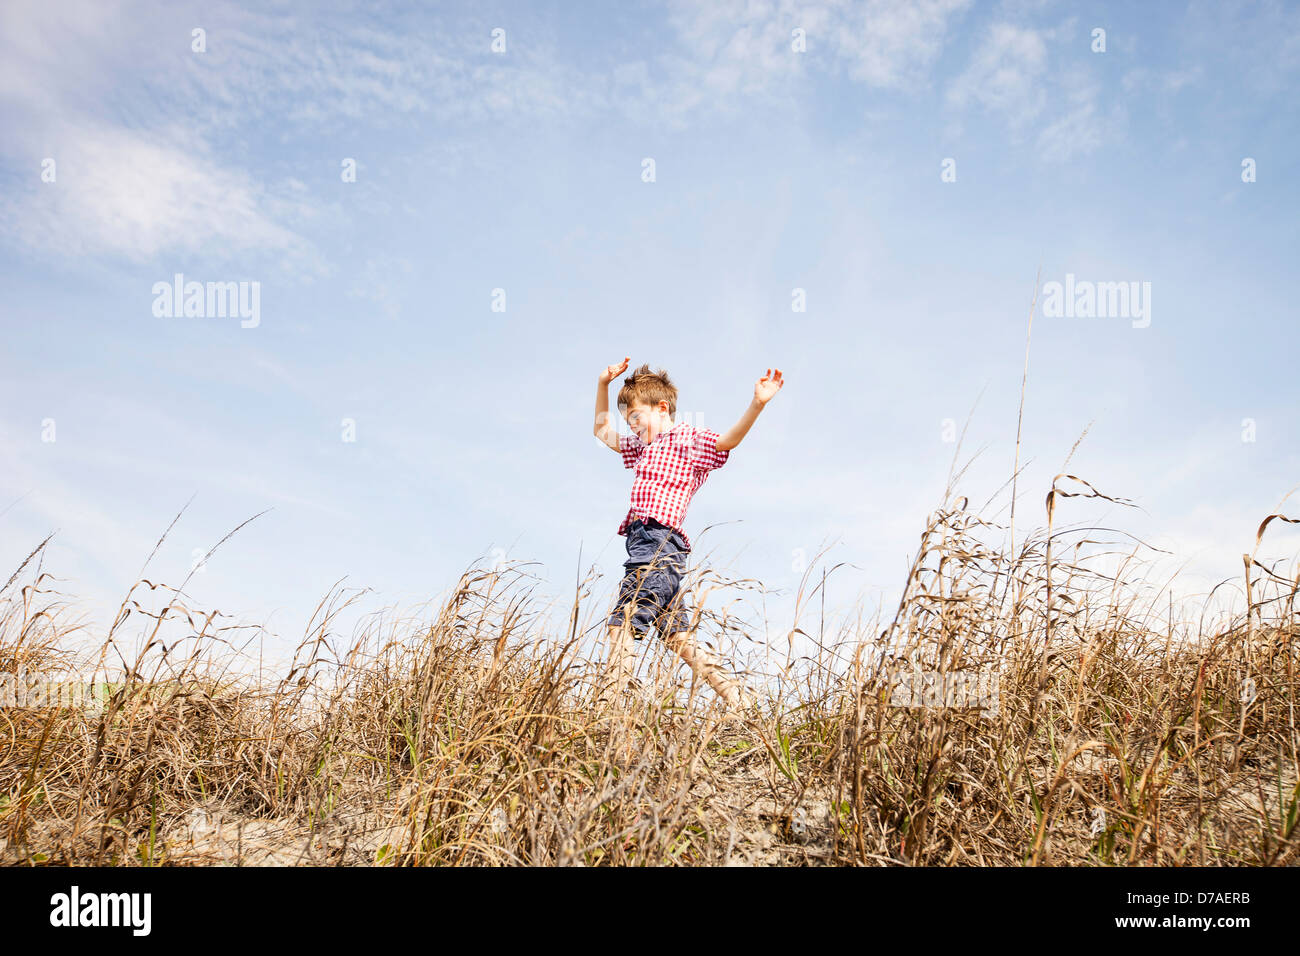 Enfant traversant dunes Photo Stock